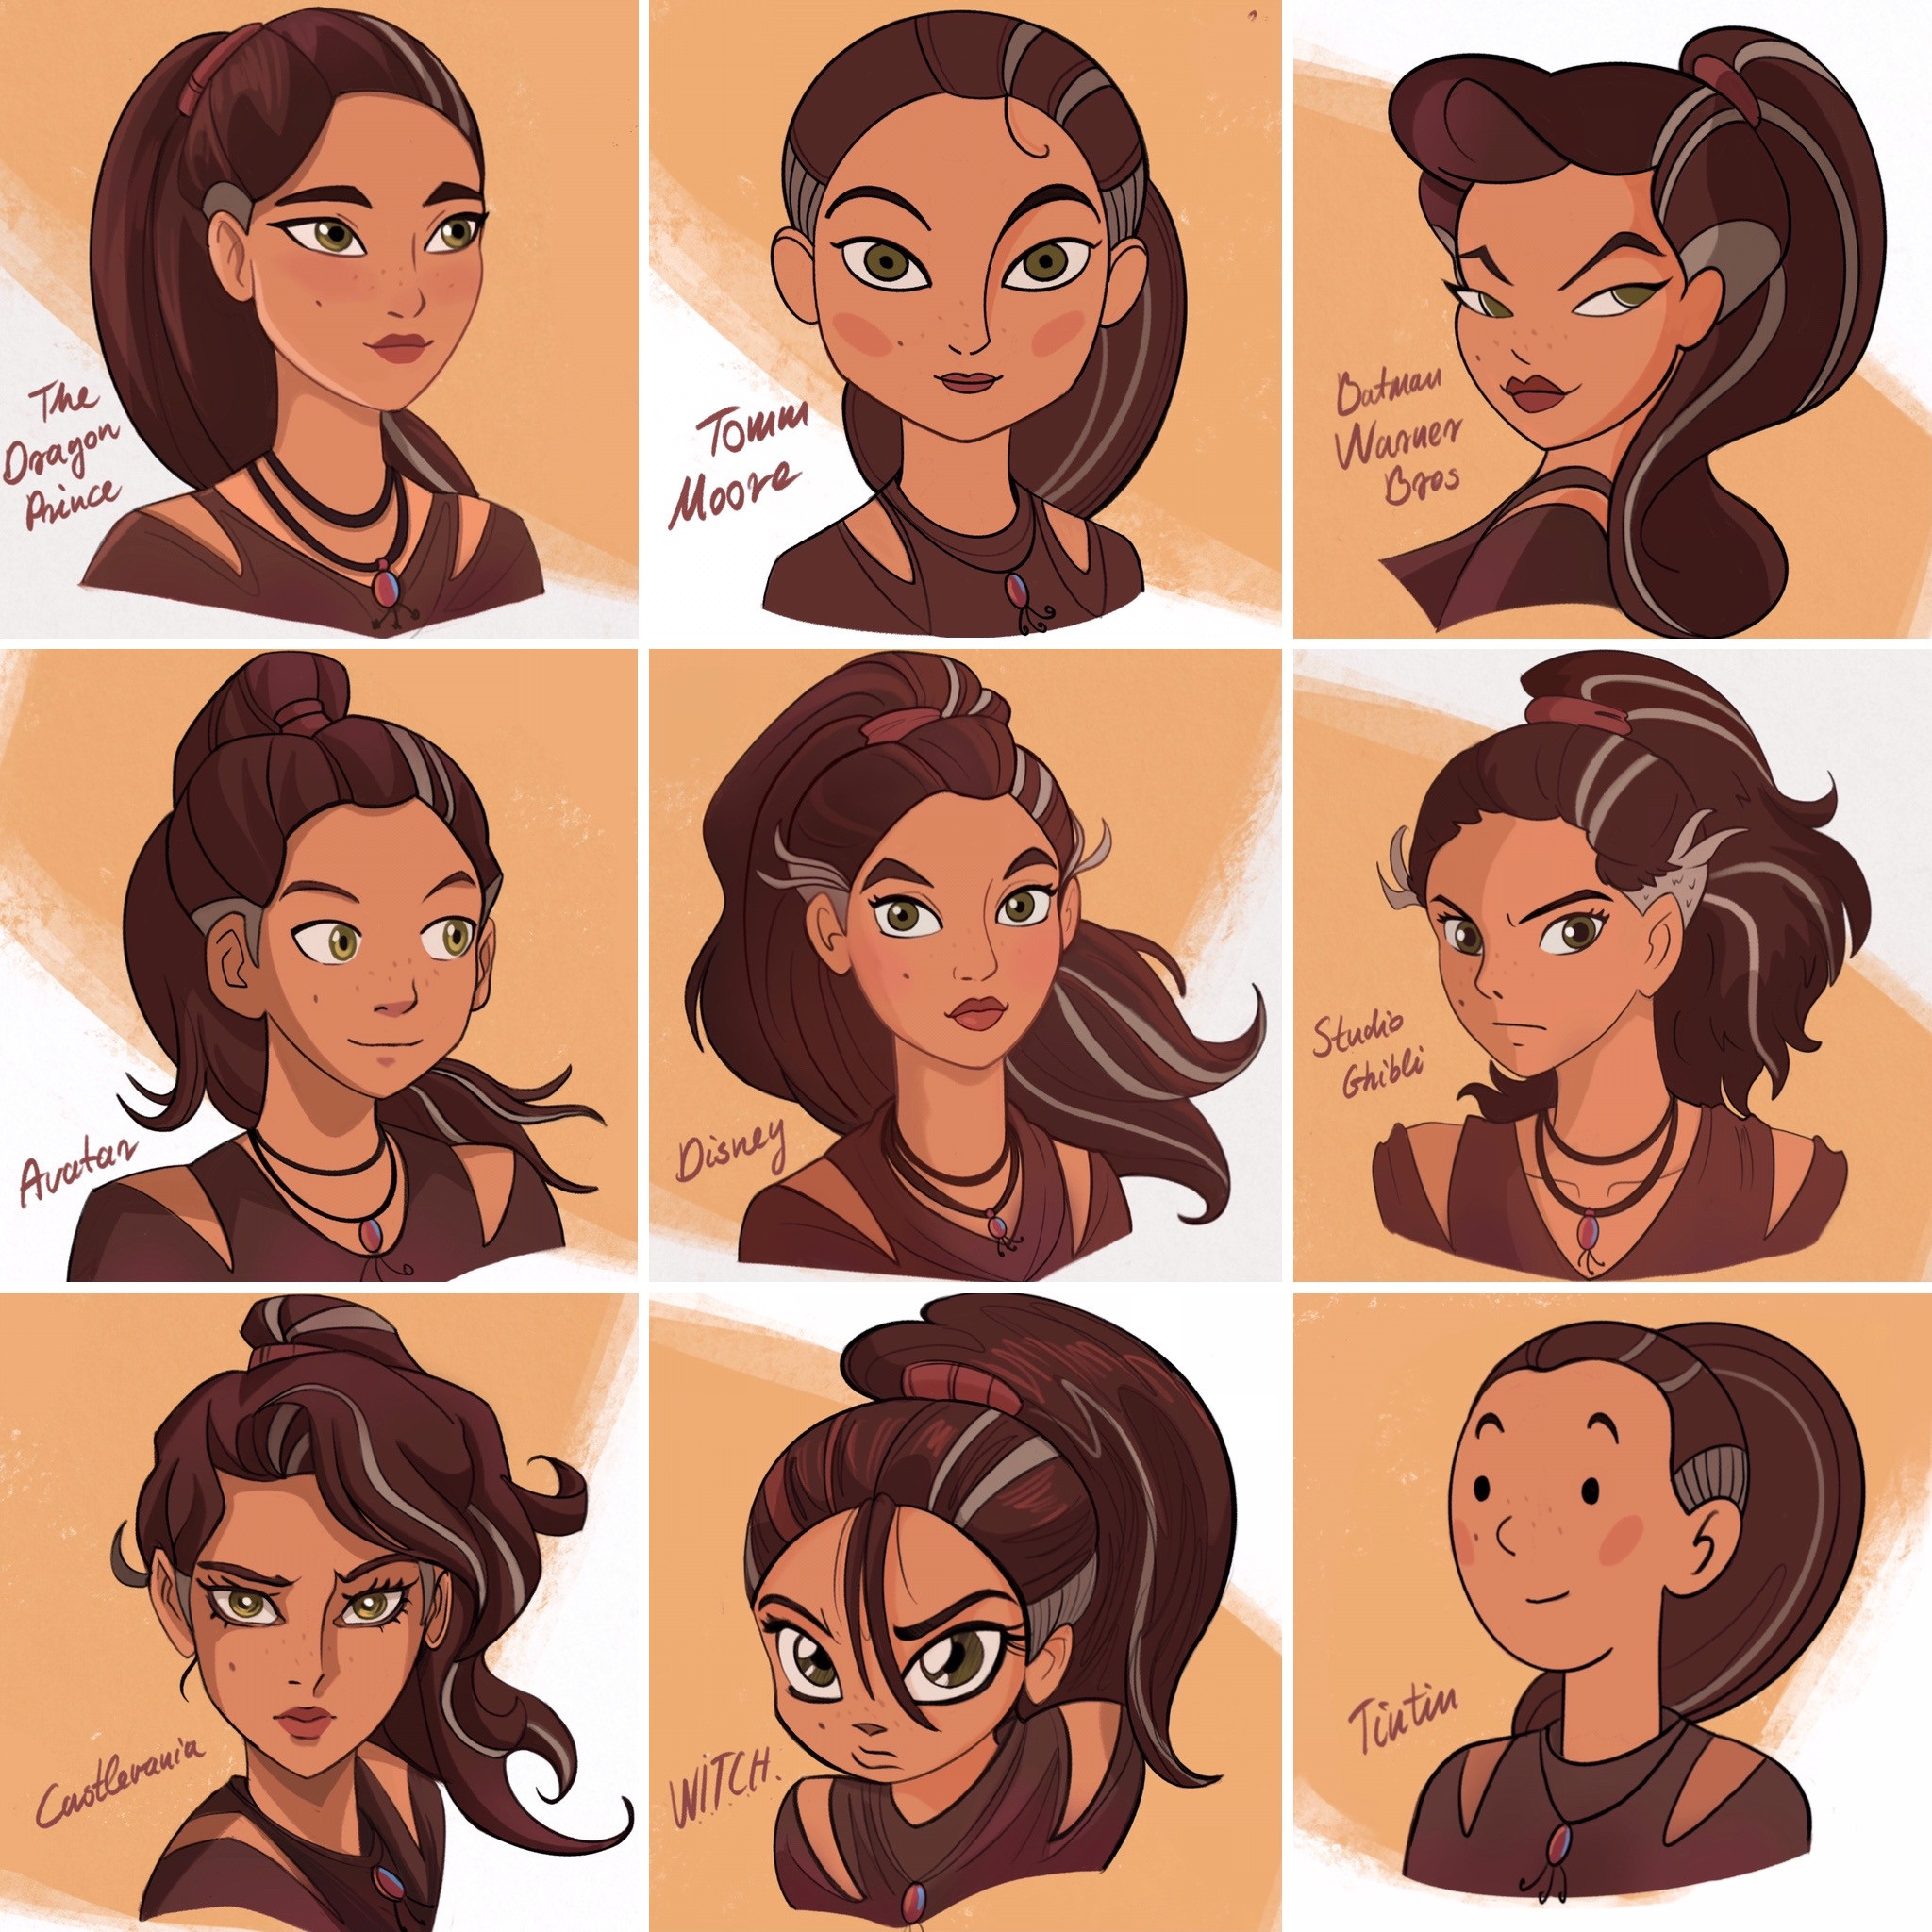 10 Art Styles - the famous styles